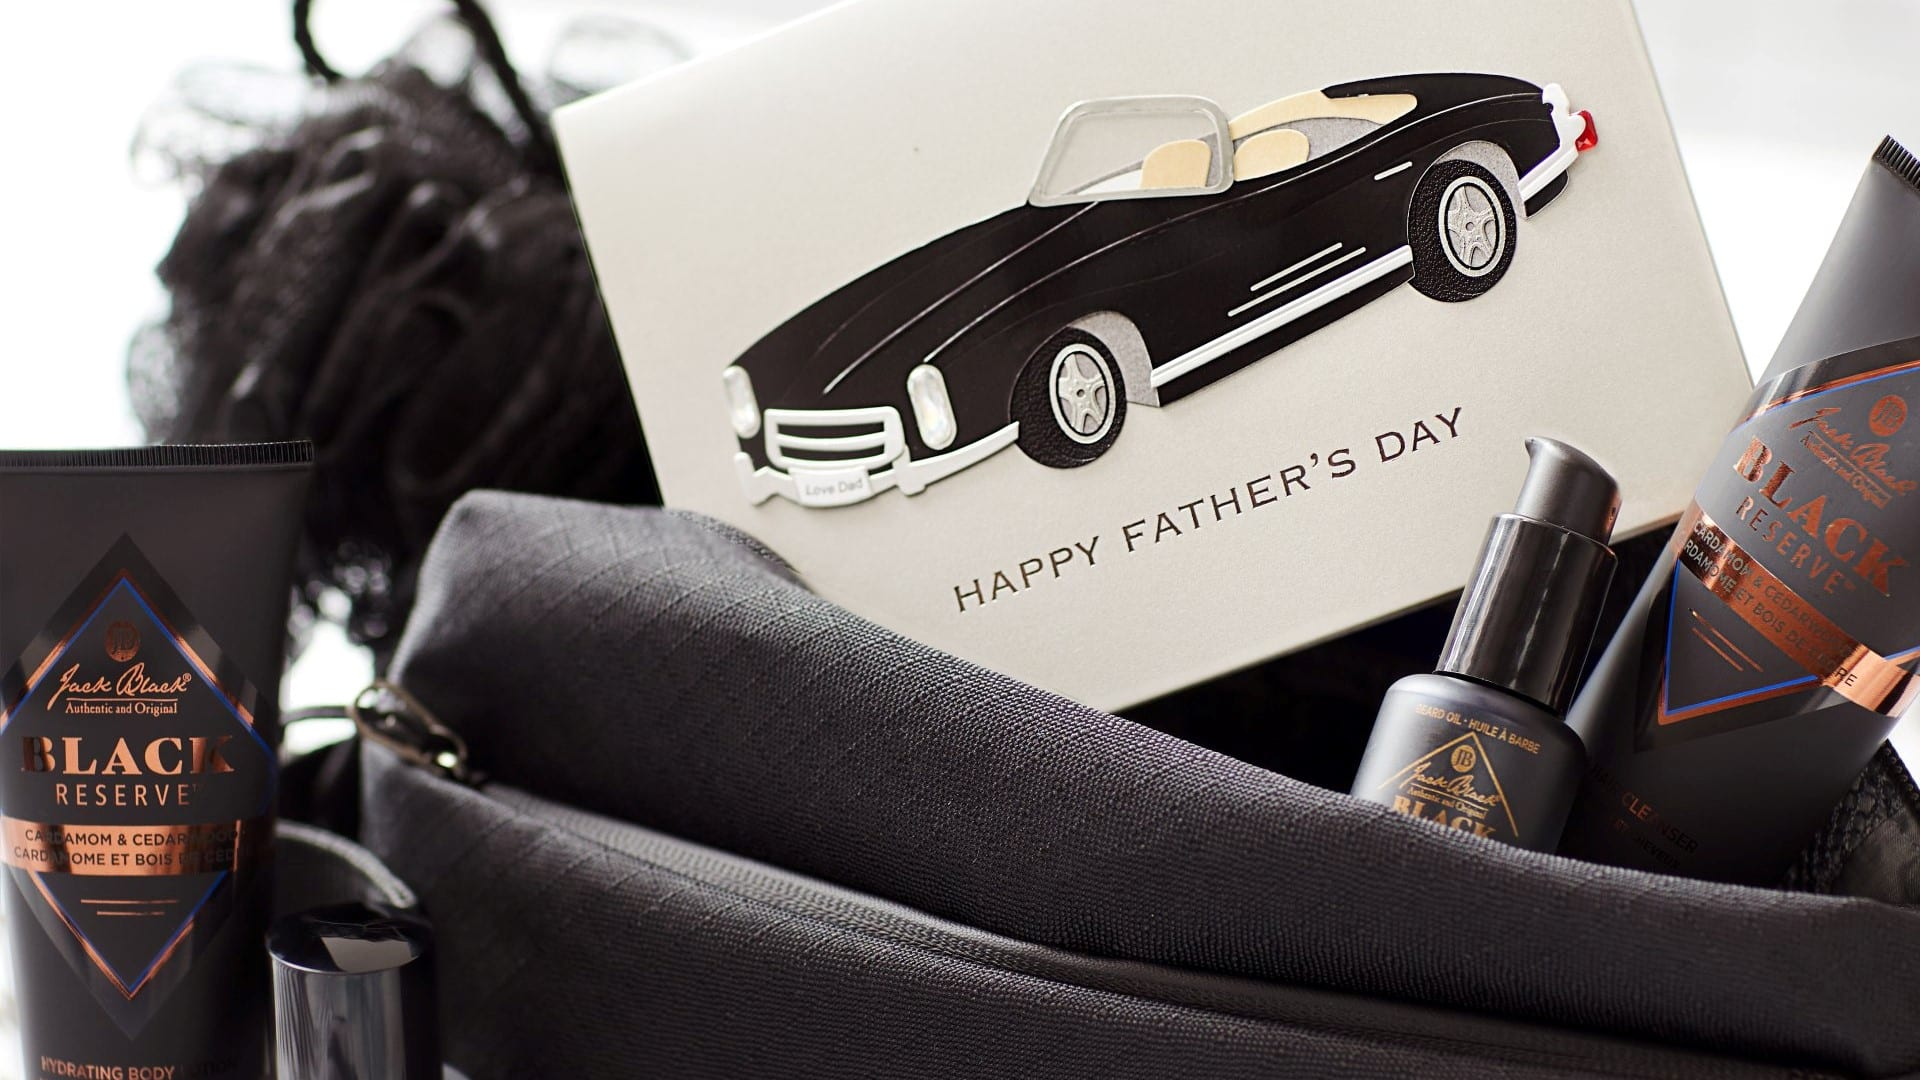 jack black skincare for fathers day gifts